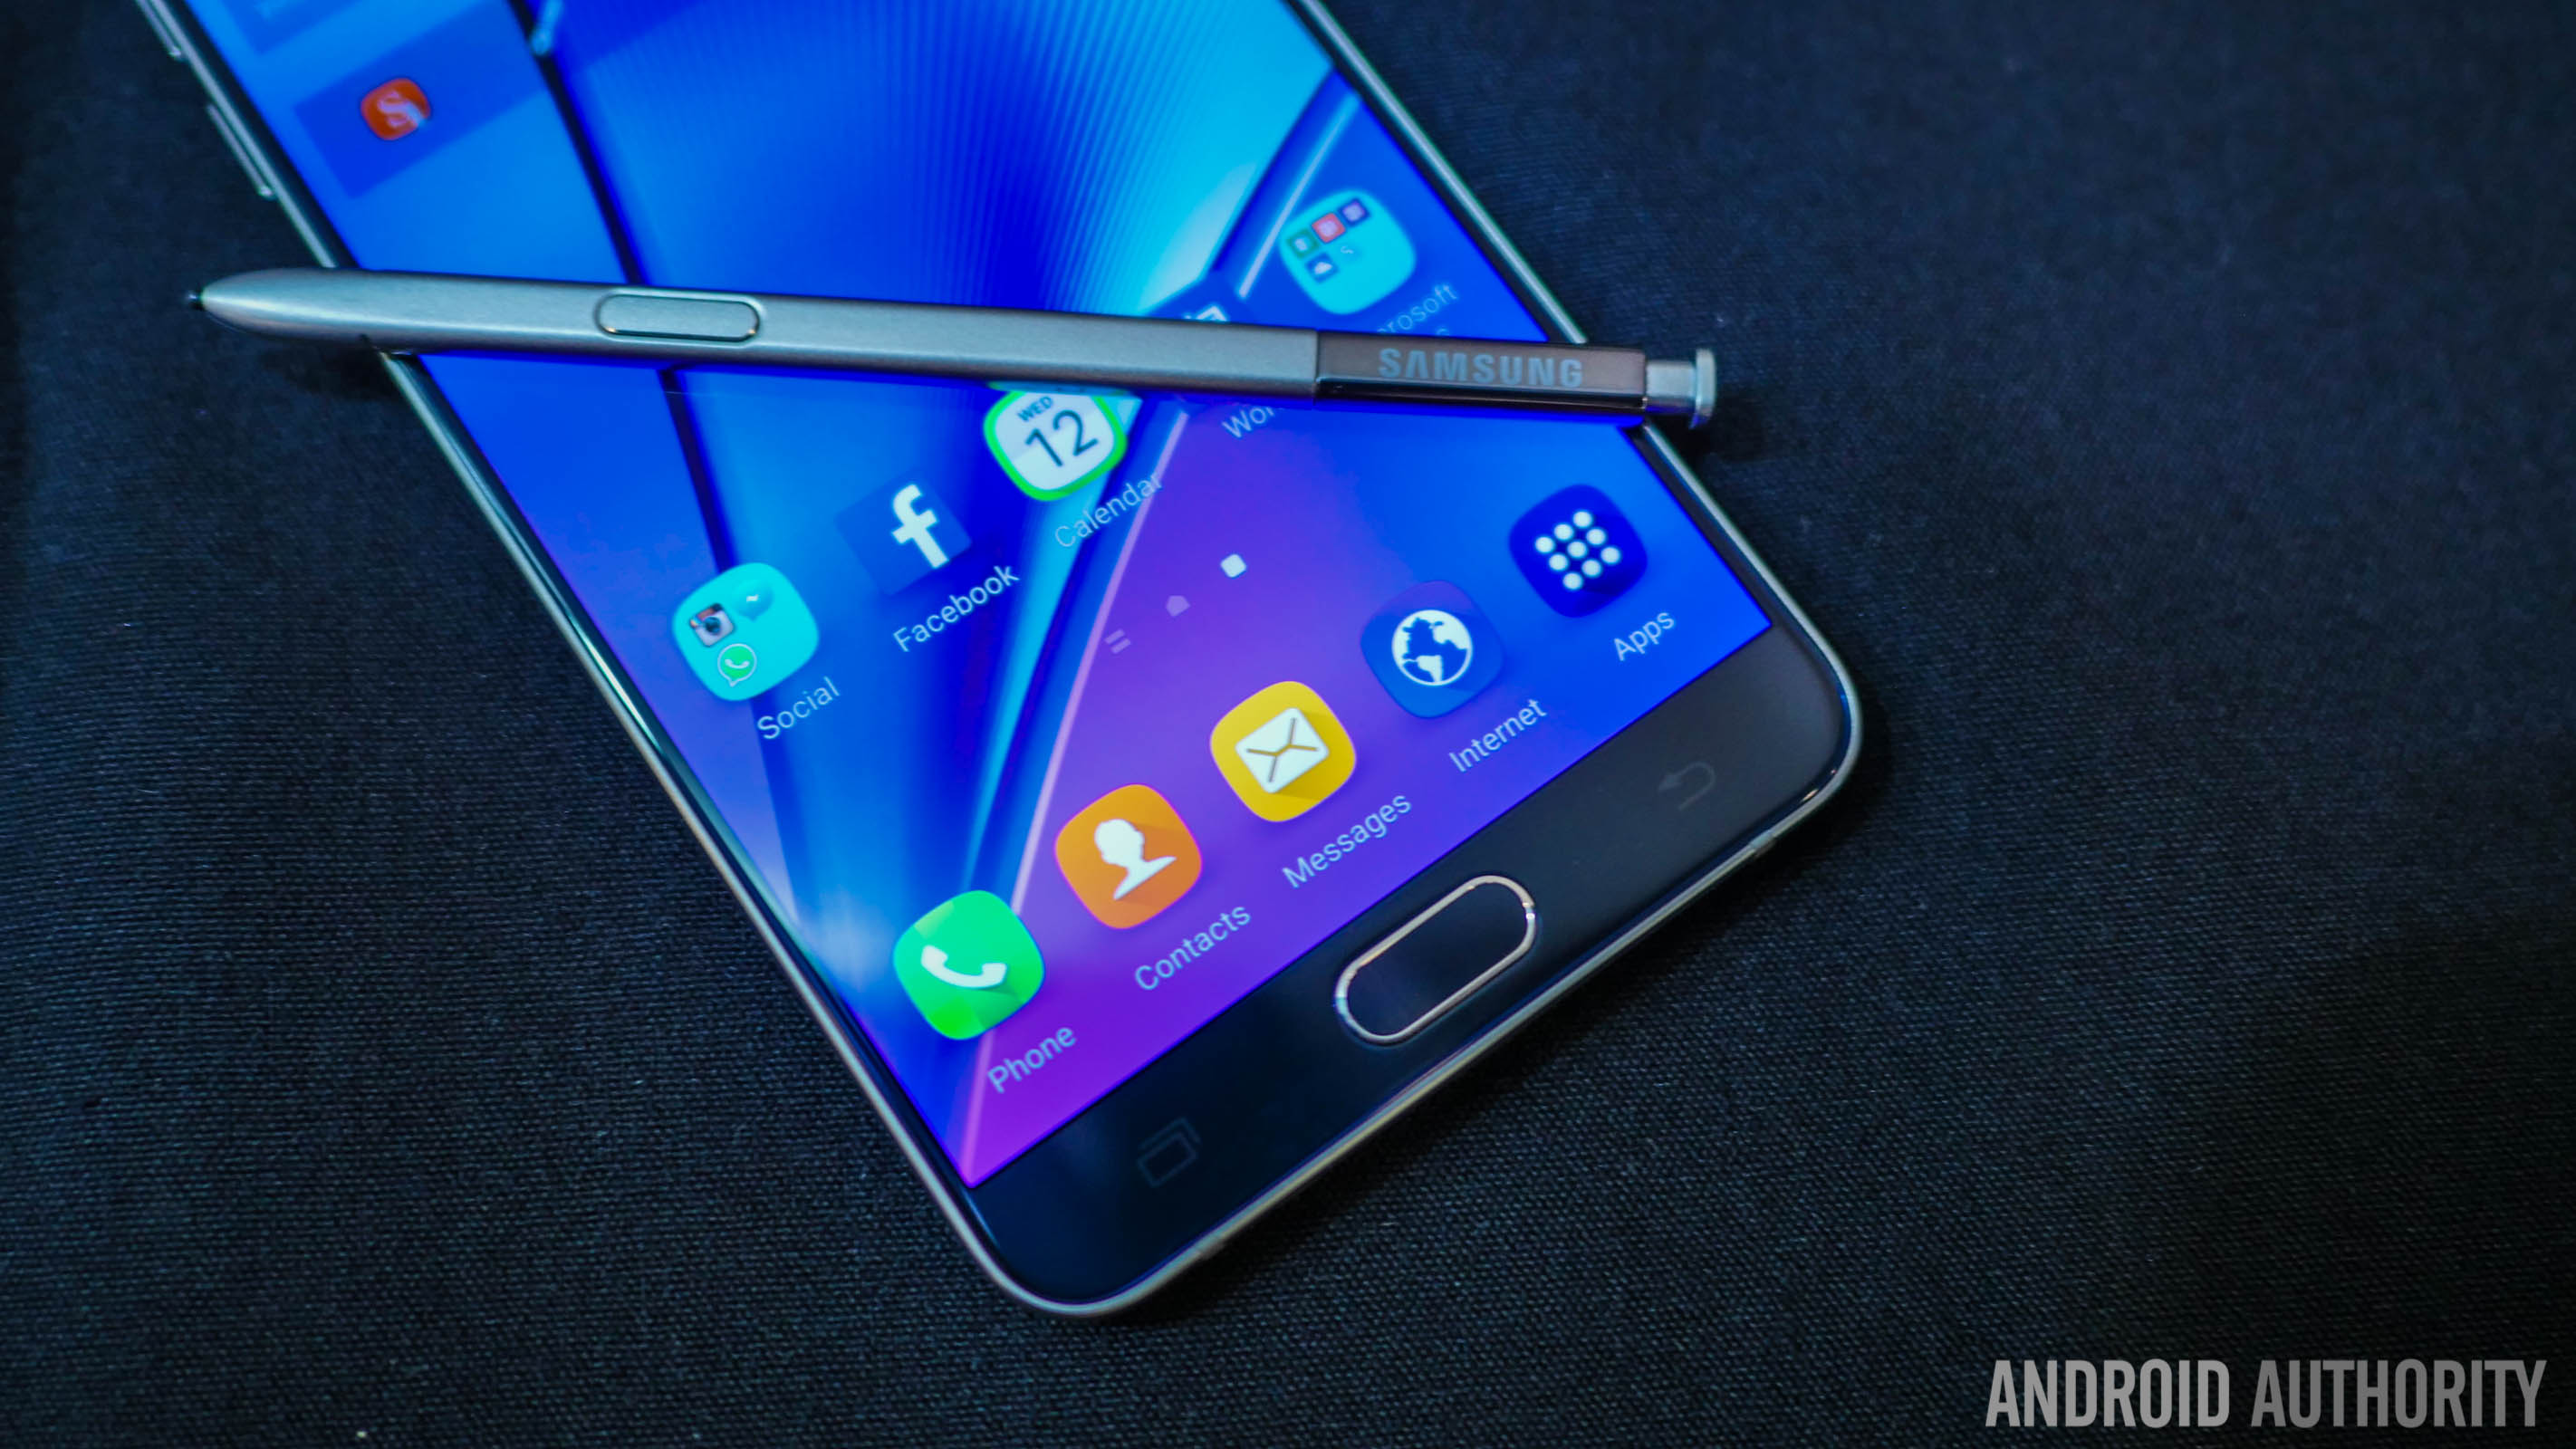 Samsung Galaxy Note 5 International Giveaway!